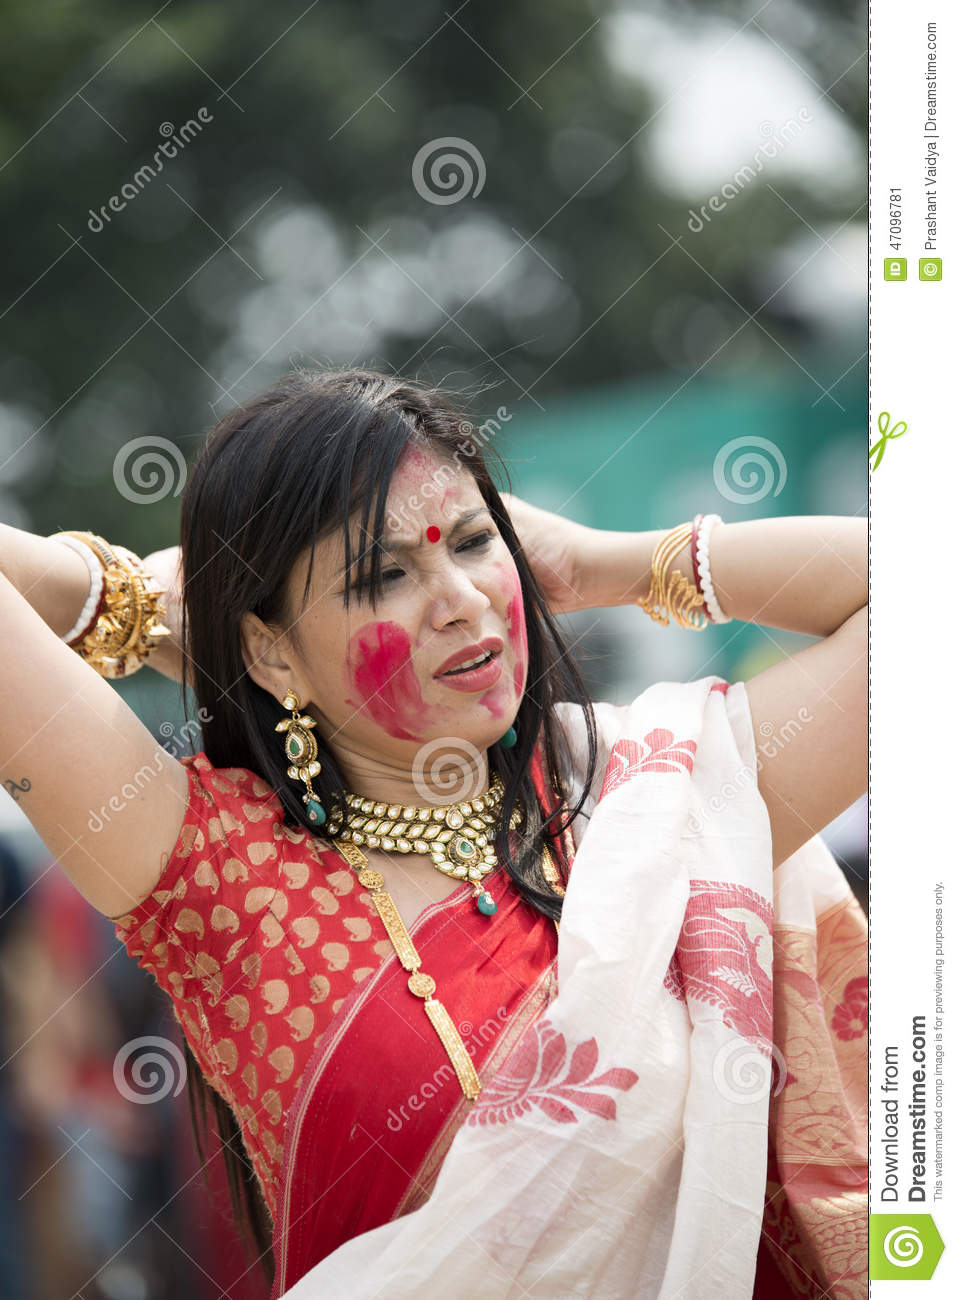 bangladeshi-wife-naket-image-ass-galleries-bloodlust